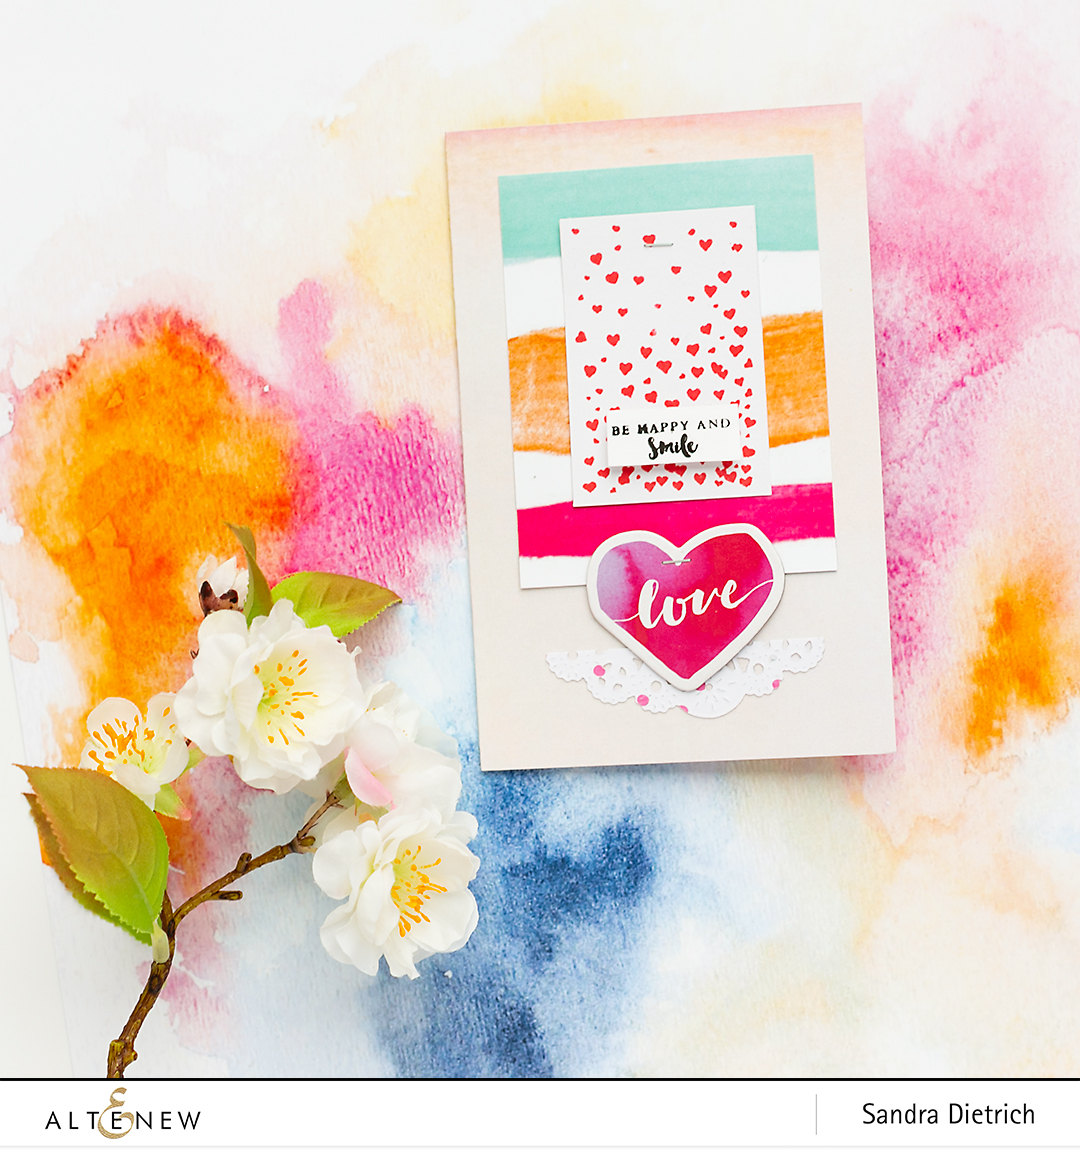 Cardmaking Inspiration with Live Your Dream @SandraDietrich for @Altenew